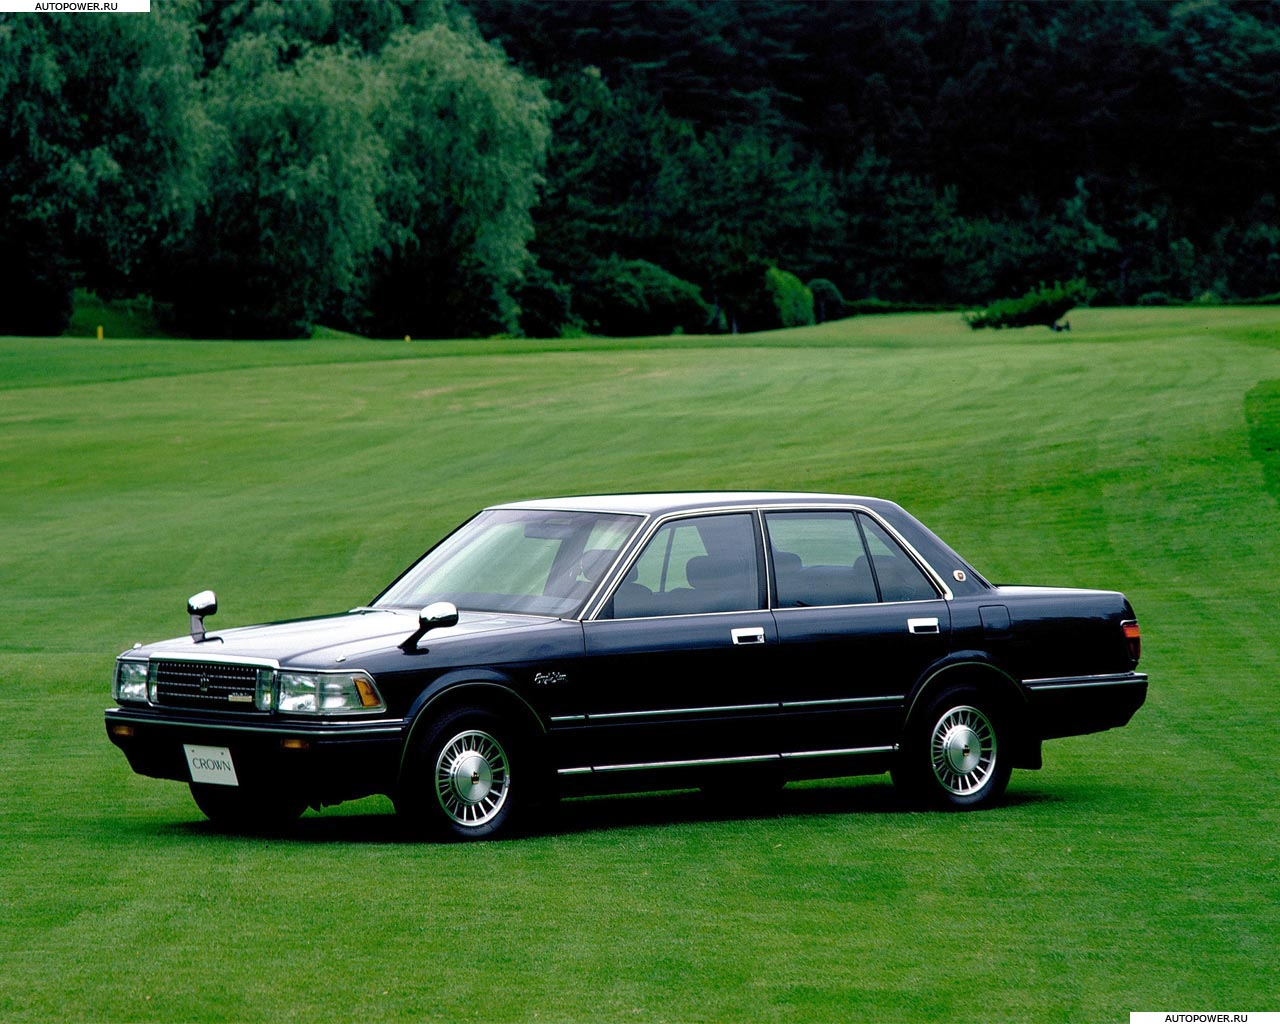 Toyota Crown S120: 08 фото